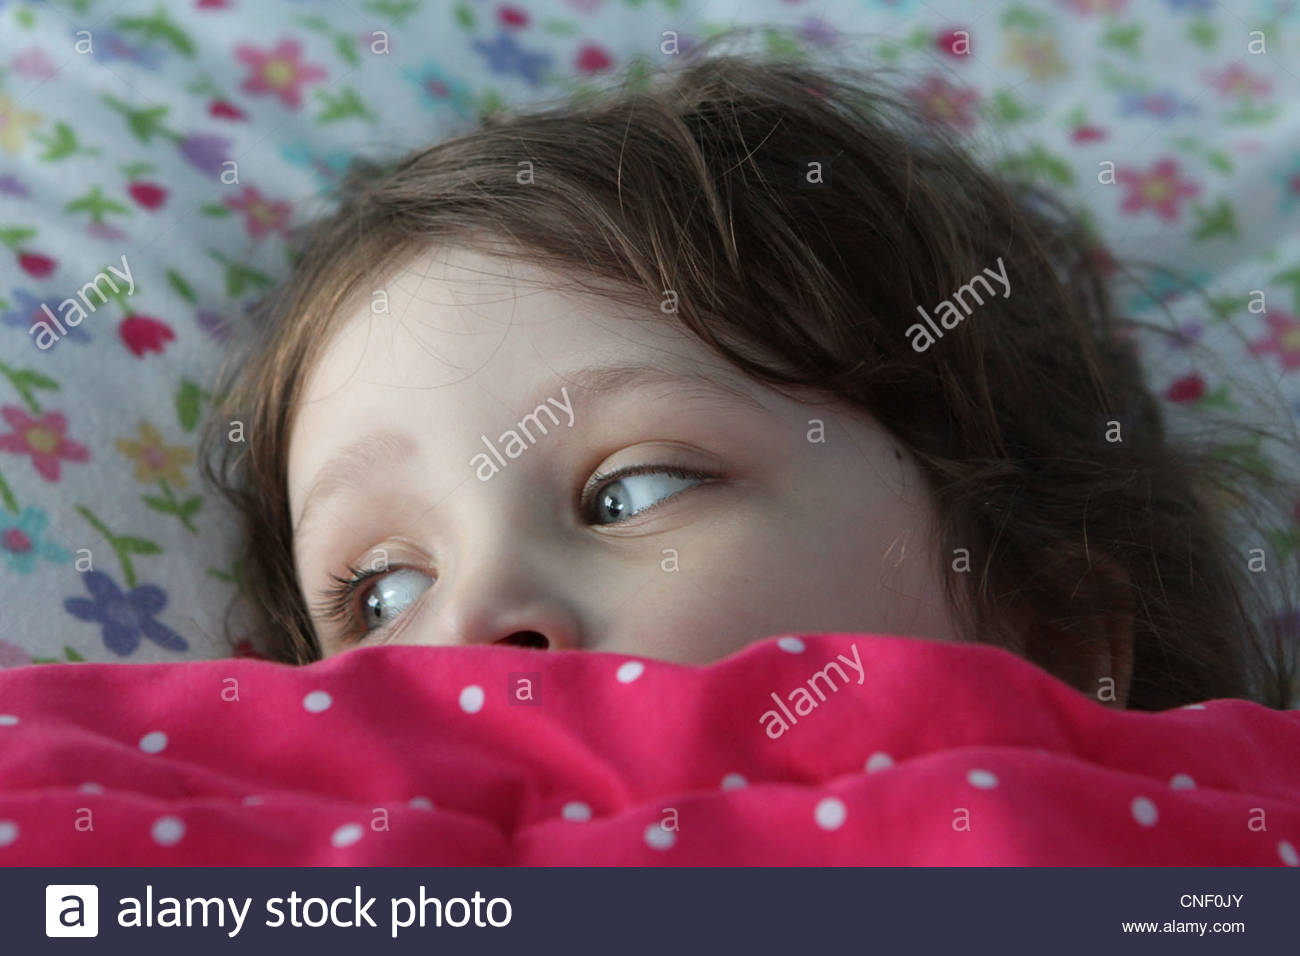 A small child in bed with blankets pulled up to eyes. Stock Foto